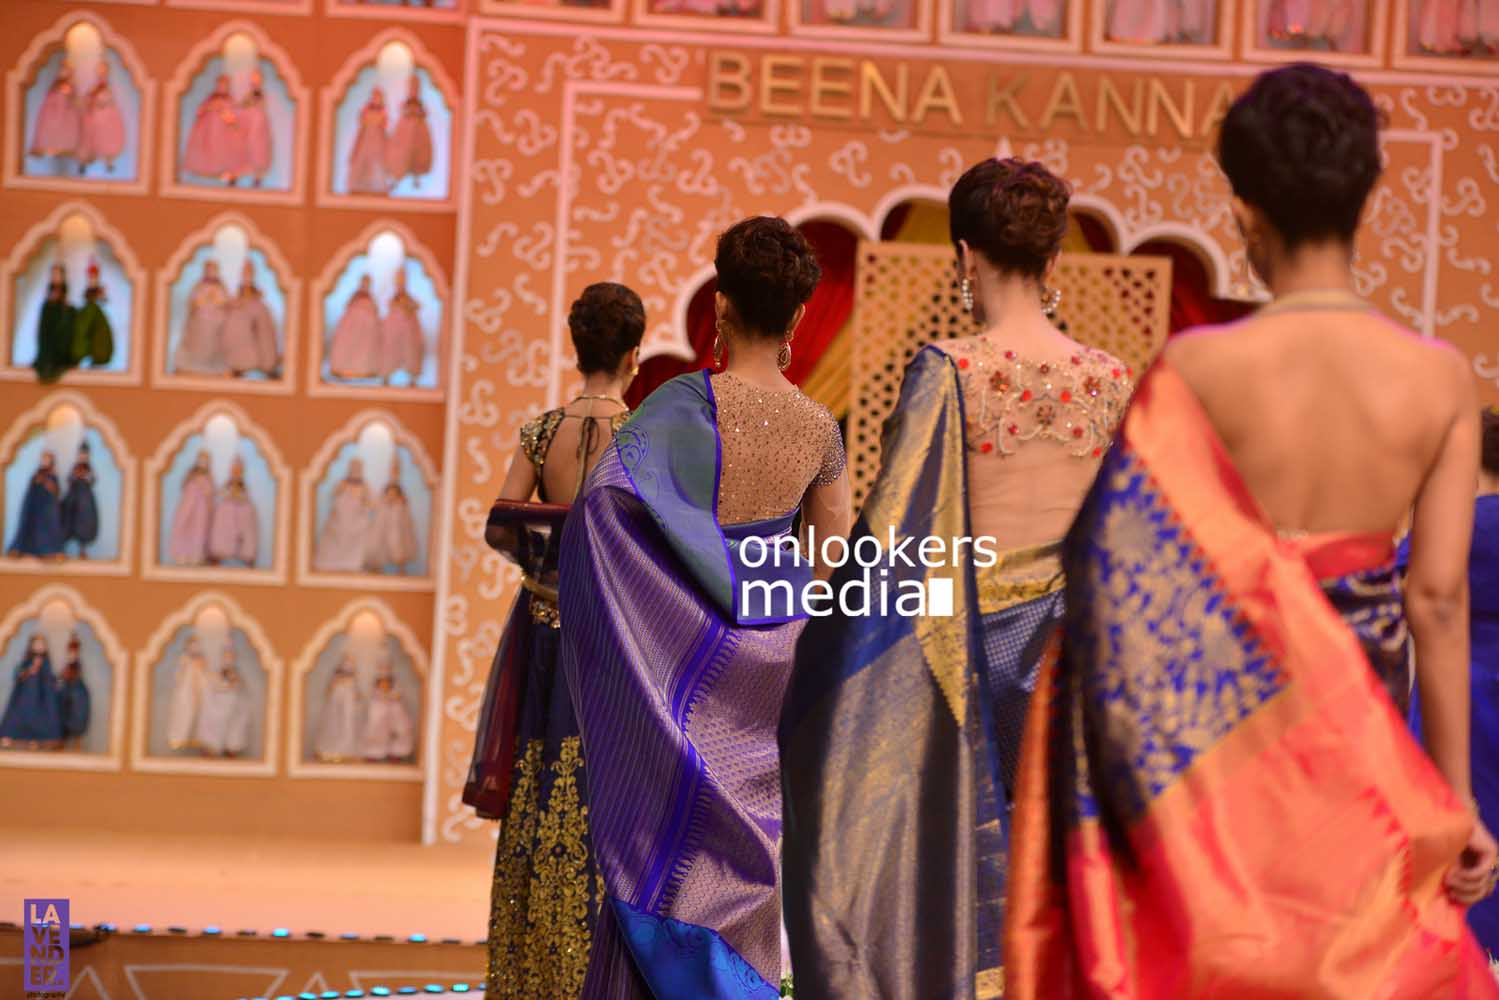 http://onlookersmedia.in/wp-content/uploads/2016/10/Beena-Kannan-Bridal-Show-2016-Stills-Photos-Seematti-178.jpg